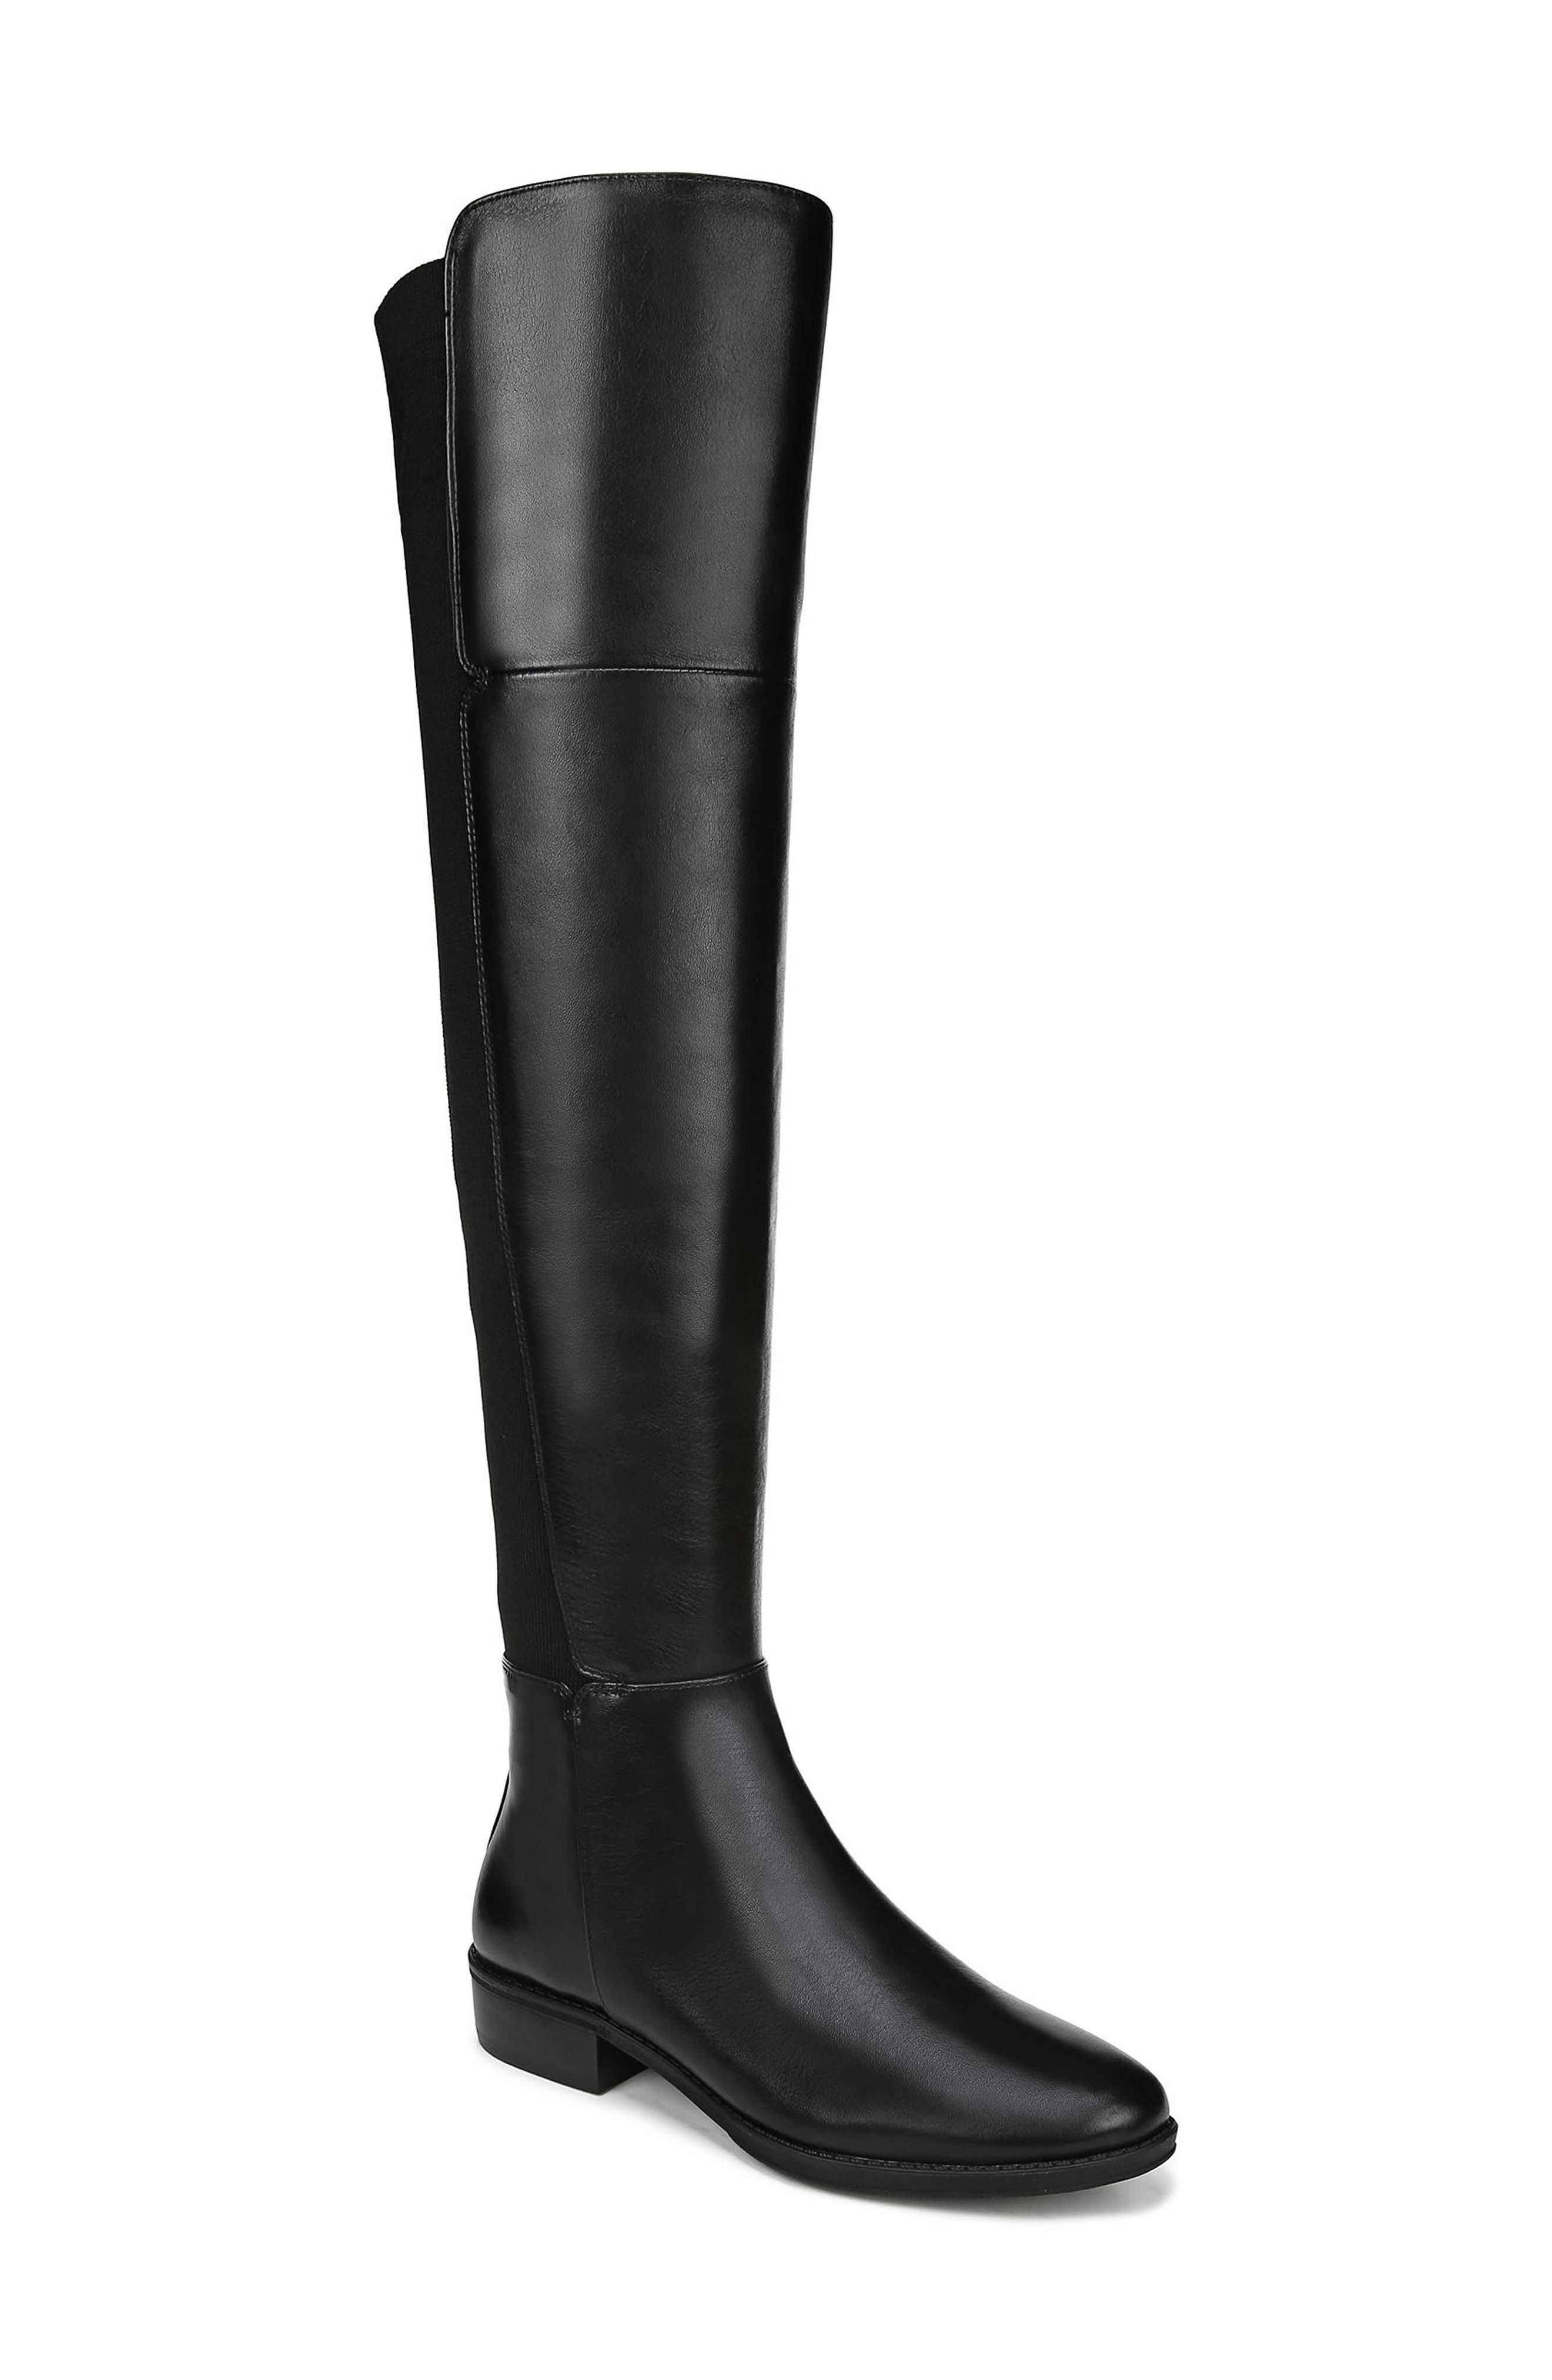 6665f117d63 sam edelman pam black leather over the knee boot